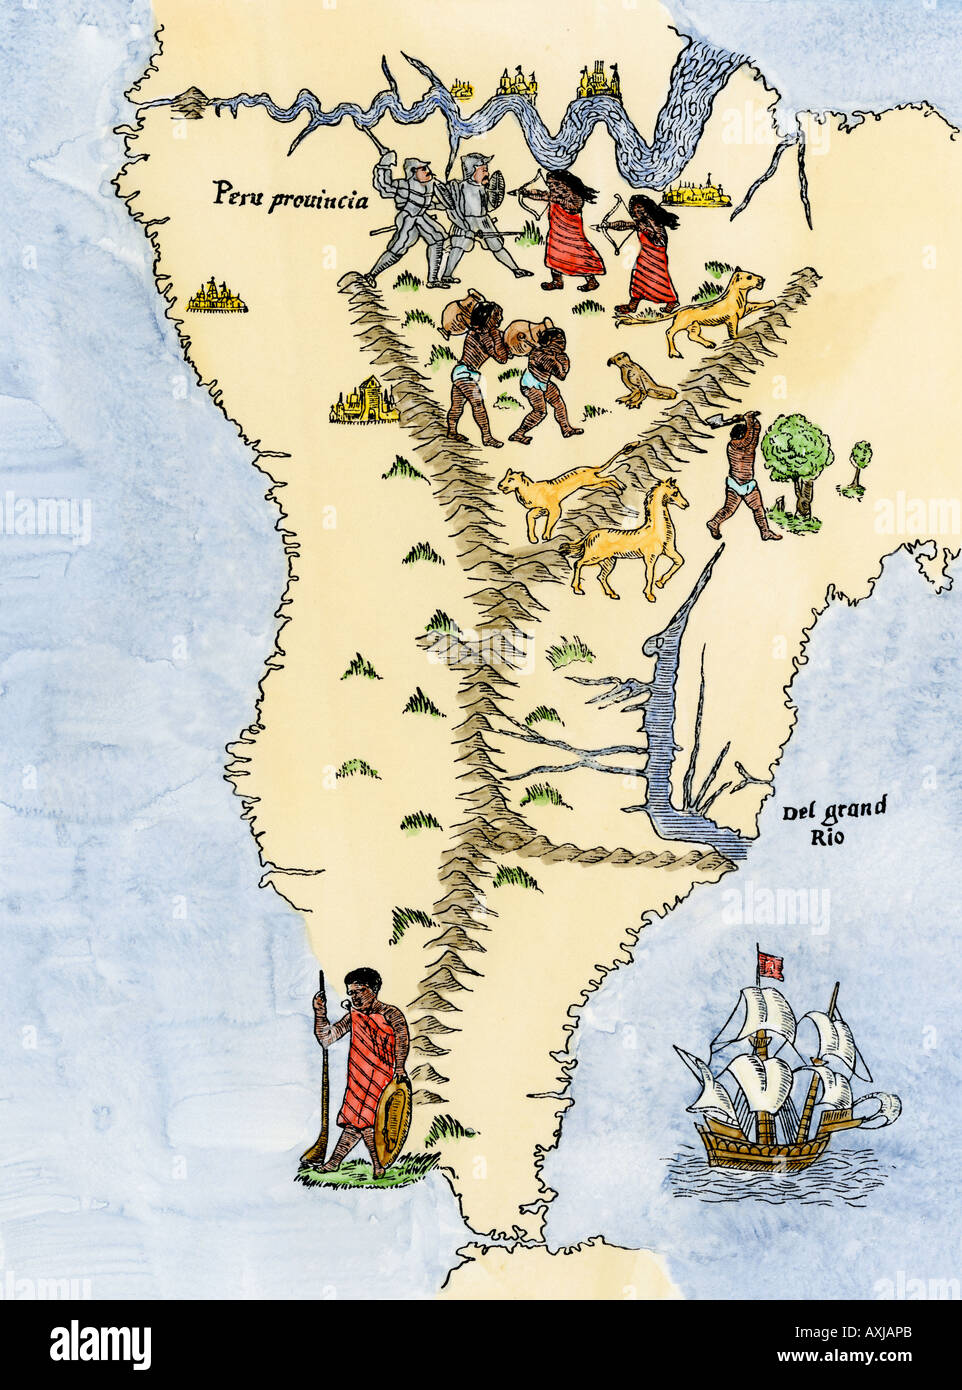 Map of south america from the sebastian cabot map of the world 1544 map of south america from the sebastian cabot map of the world 1544 gumiabroncs Image collections